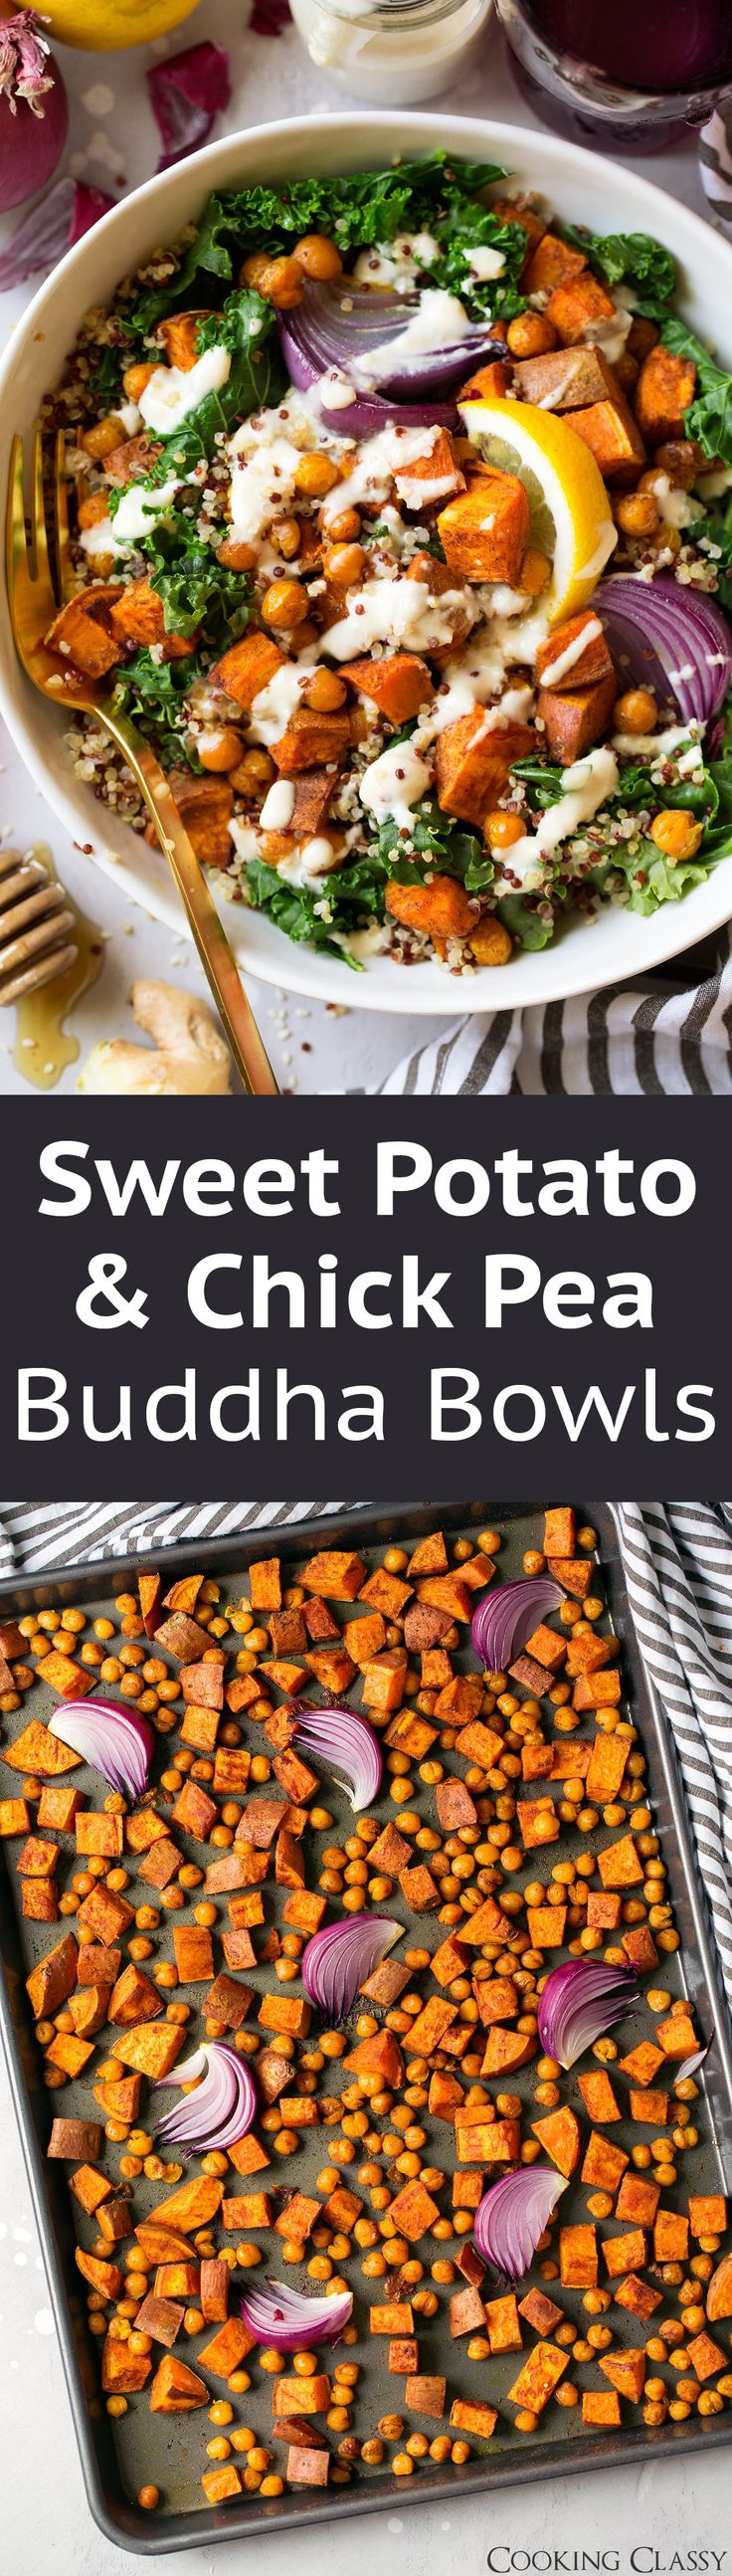 Sweet Potato and Chick Pea Buddha Bowls with Ginger Tahini Sauce via @cookingclassy